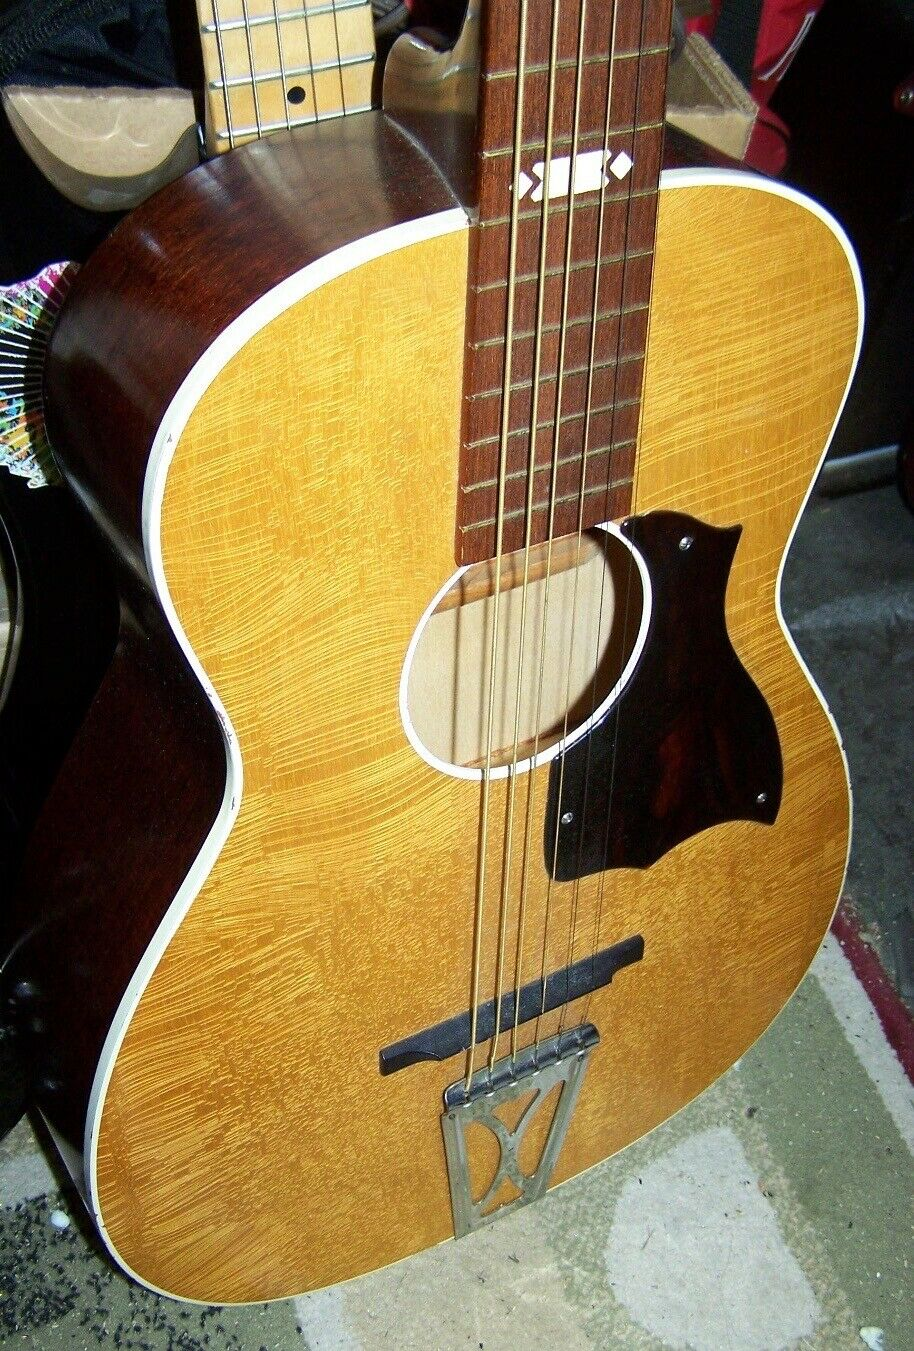 s l1600 - Harmony Stella Parlor Guitar Factory Second 1970's